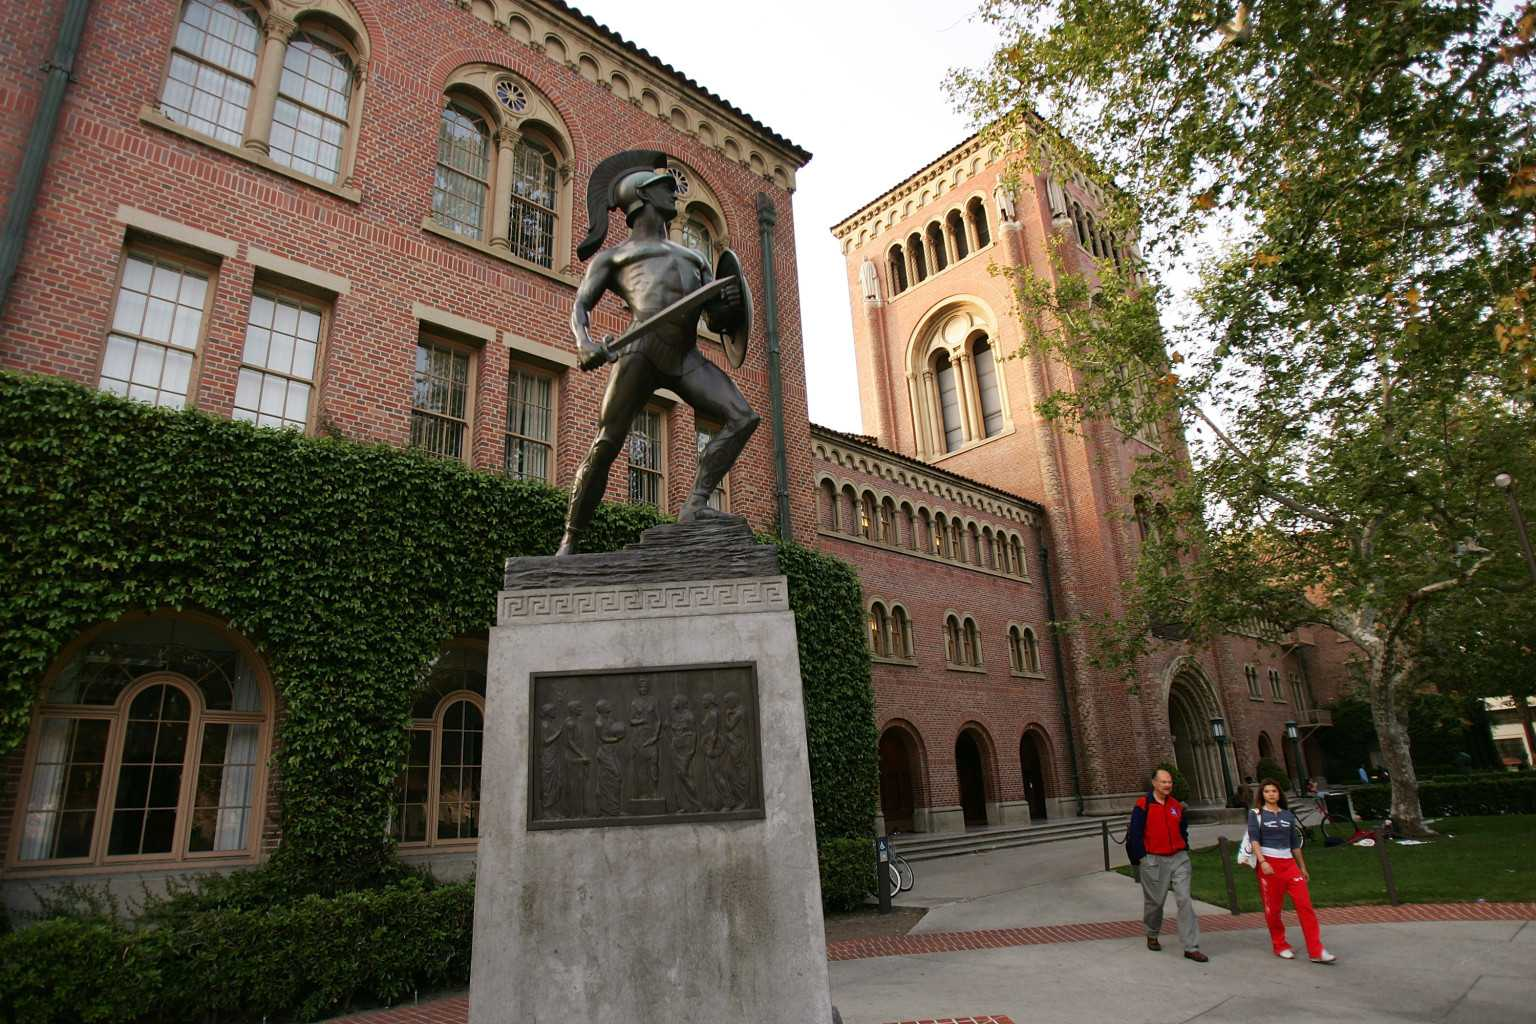 The iconic statue of Tommy Trojan on USC's campus.